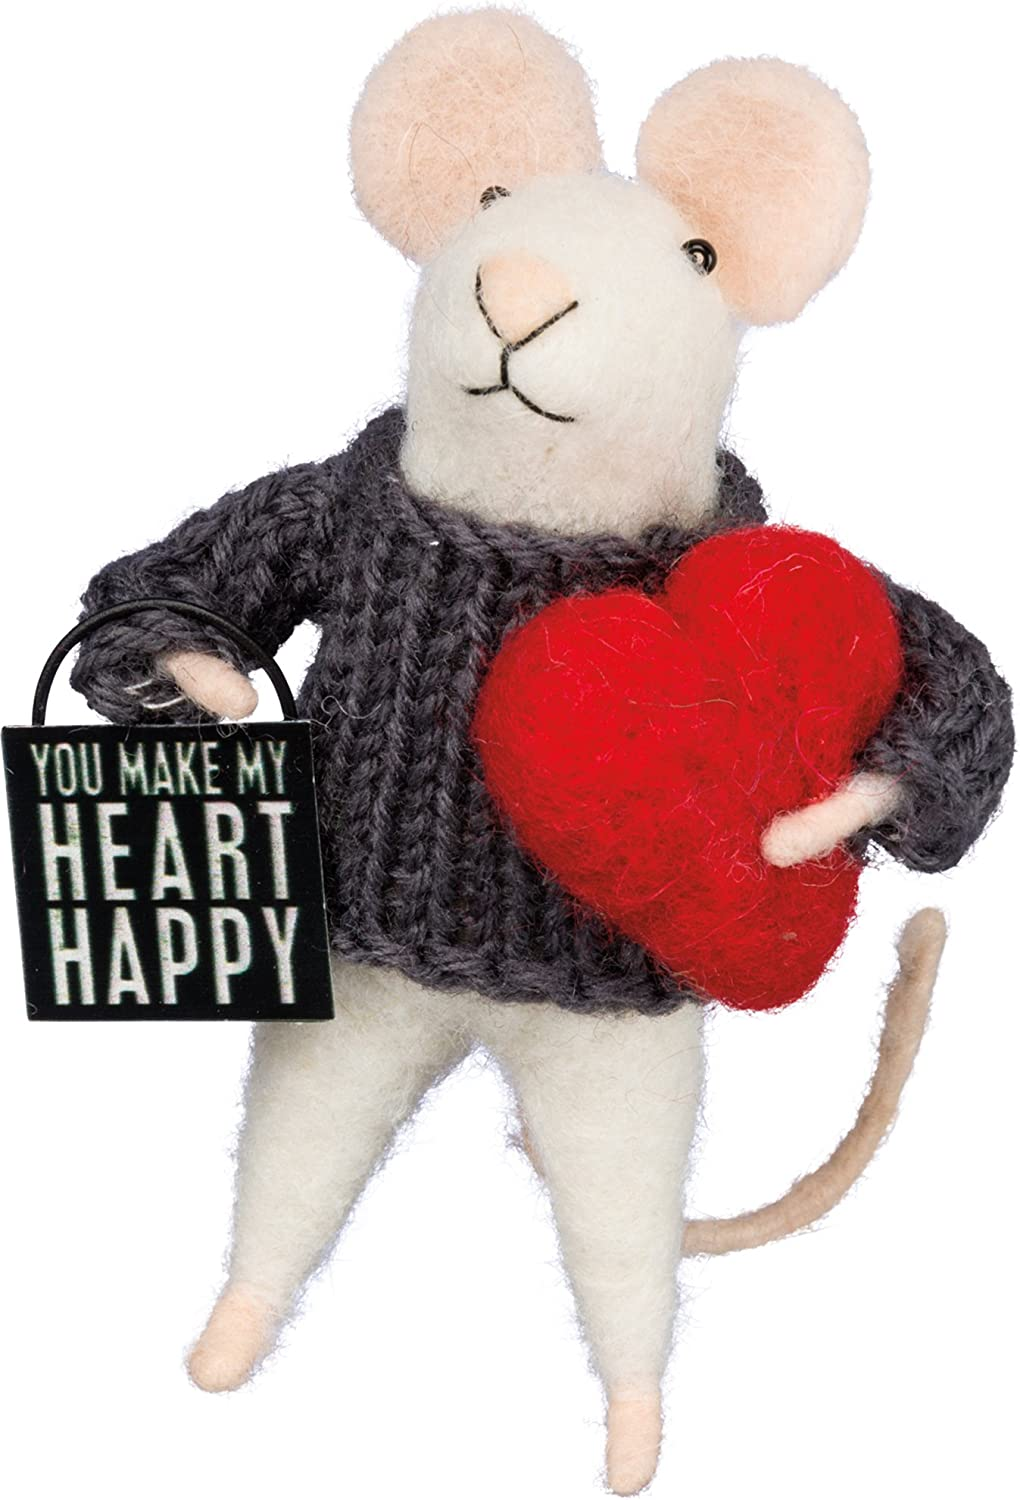 "Primitives by Kathy Box Sign Mouse - Heart Happy Size: 4.50"" Tall"